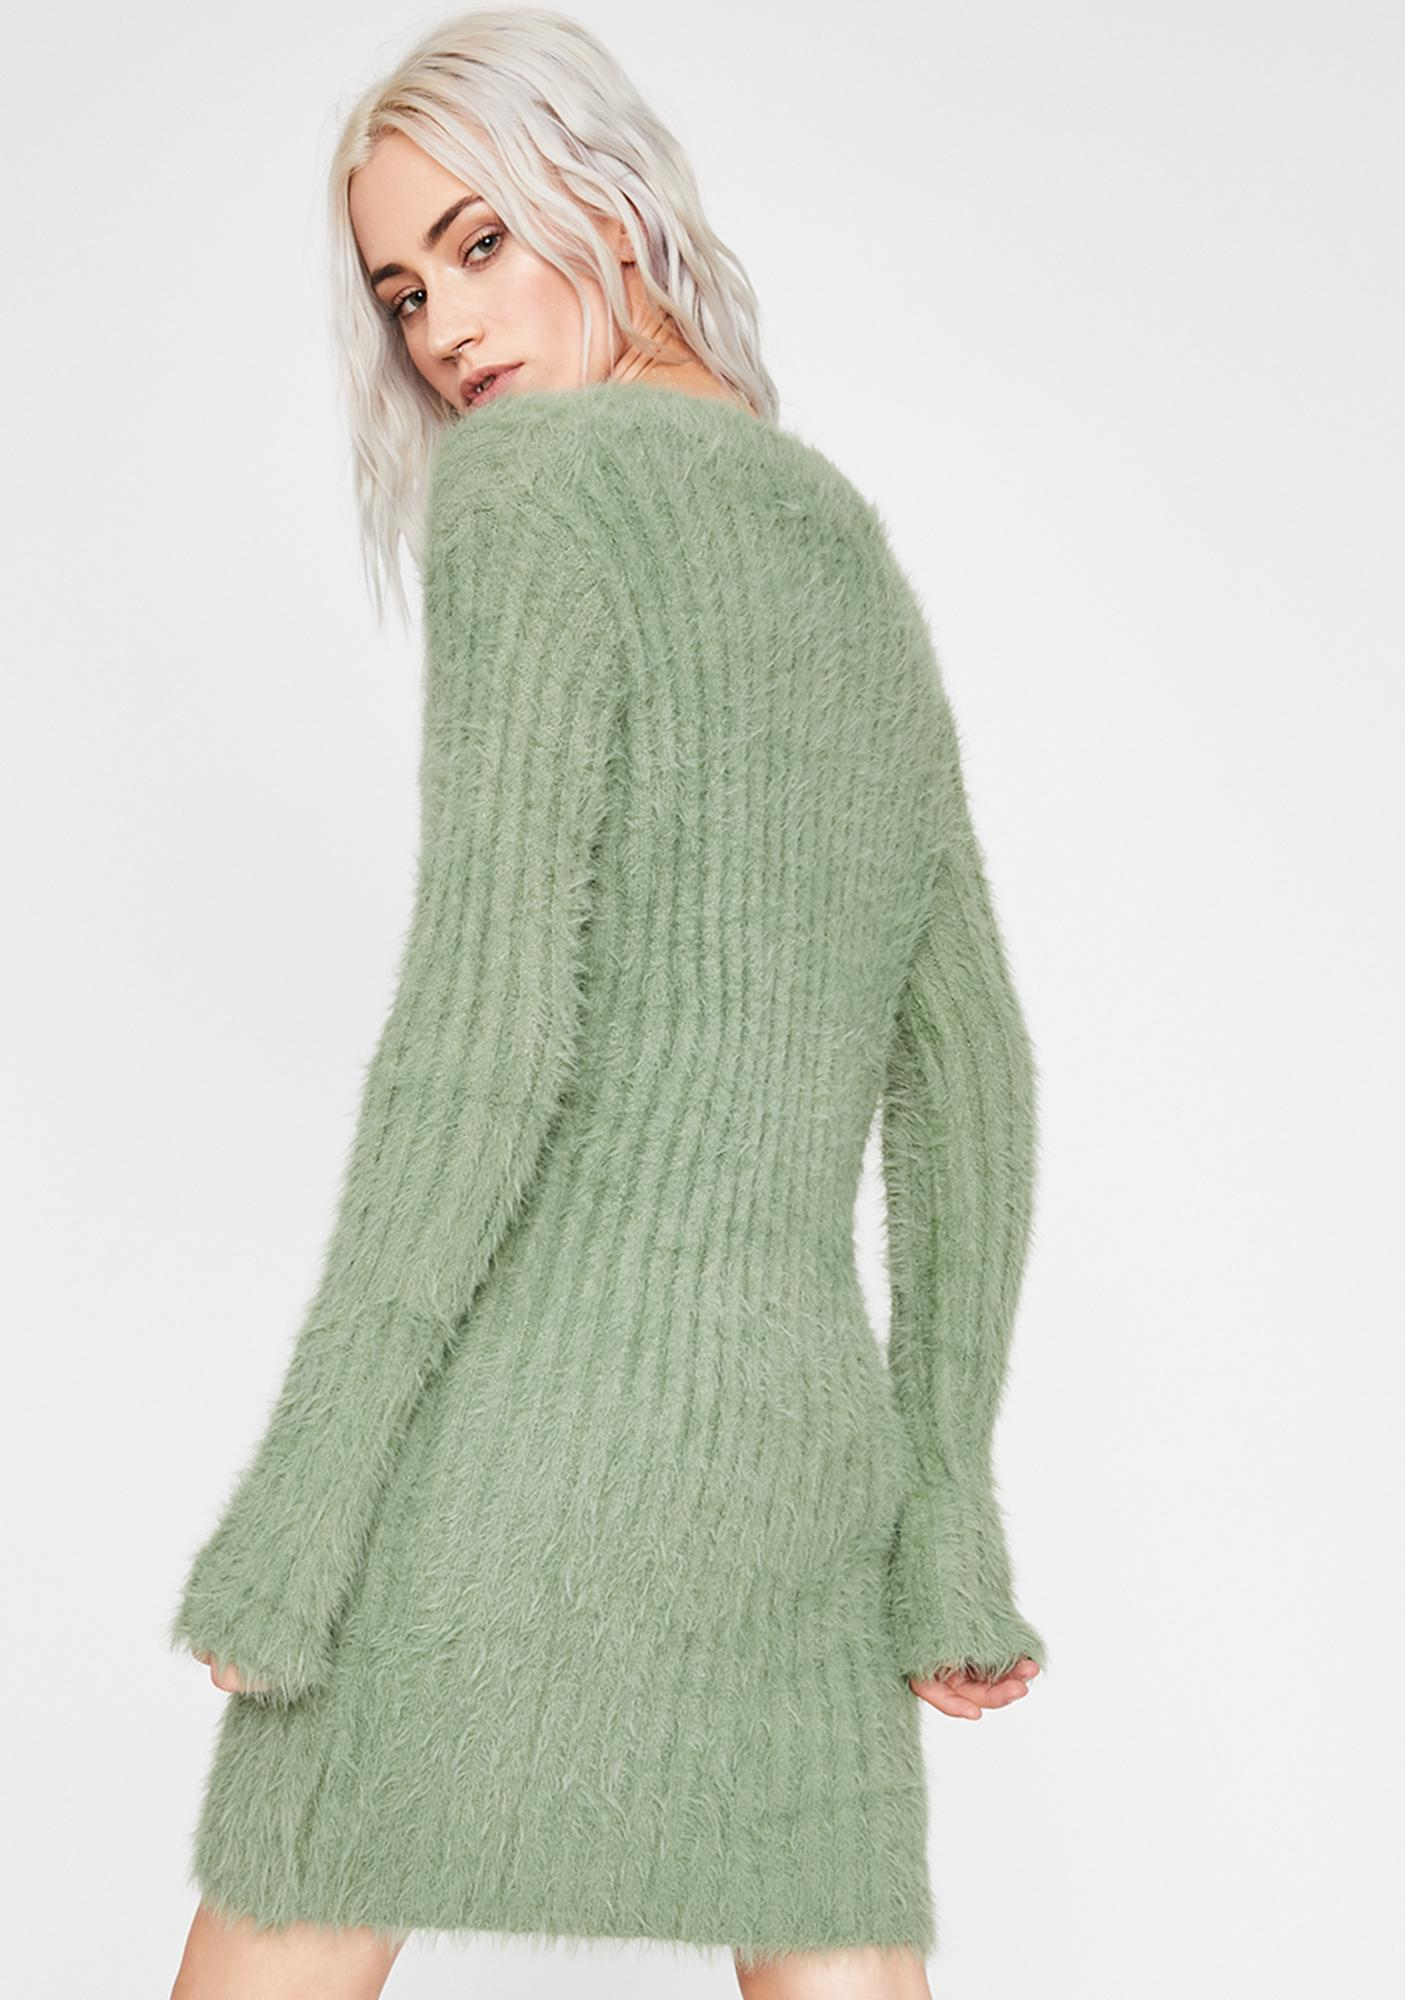 Cuddle Bug Fuzzy Sweater